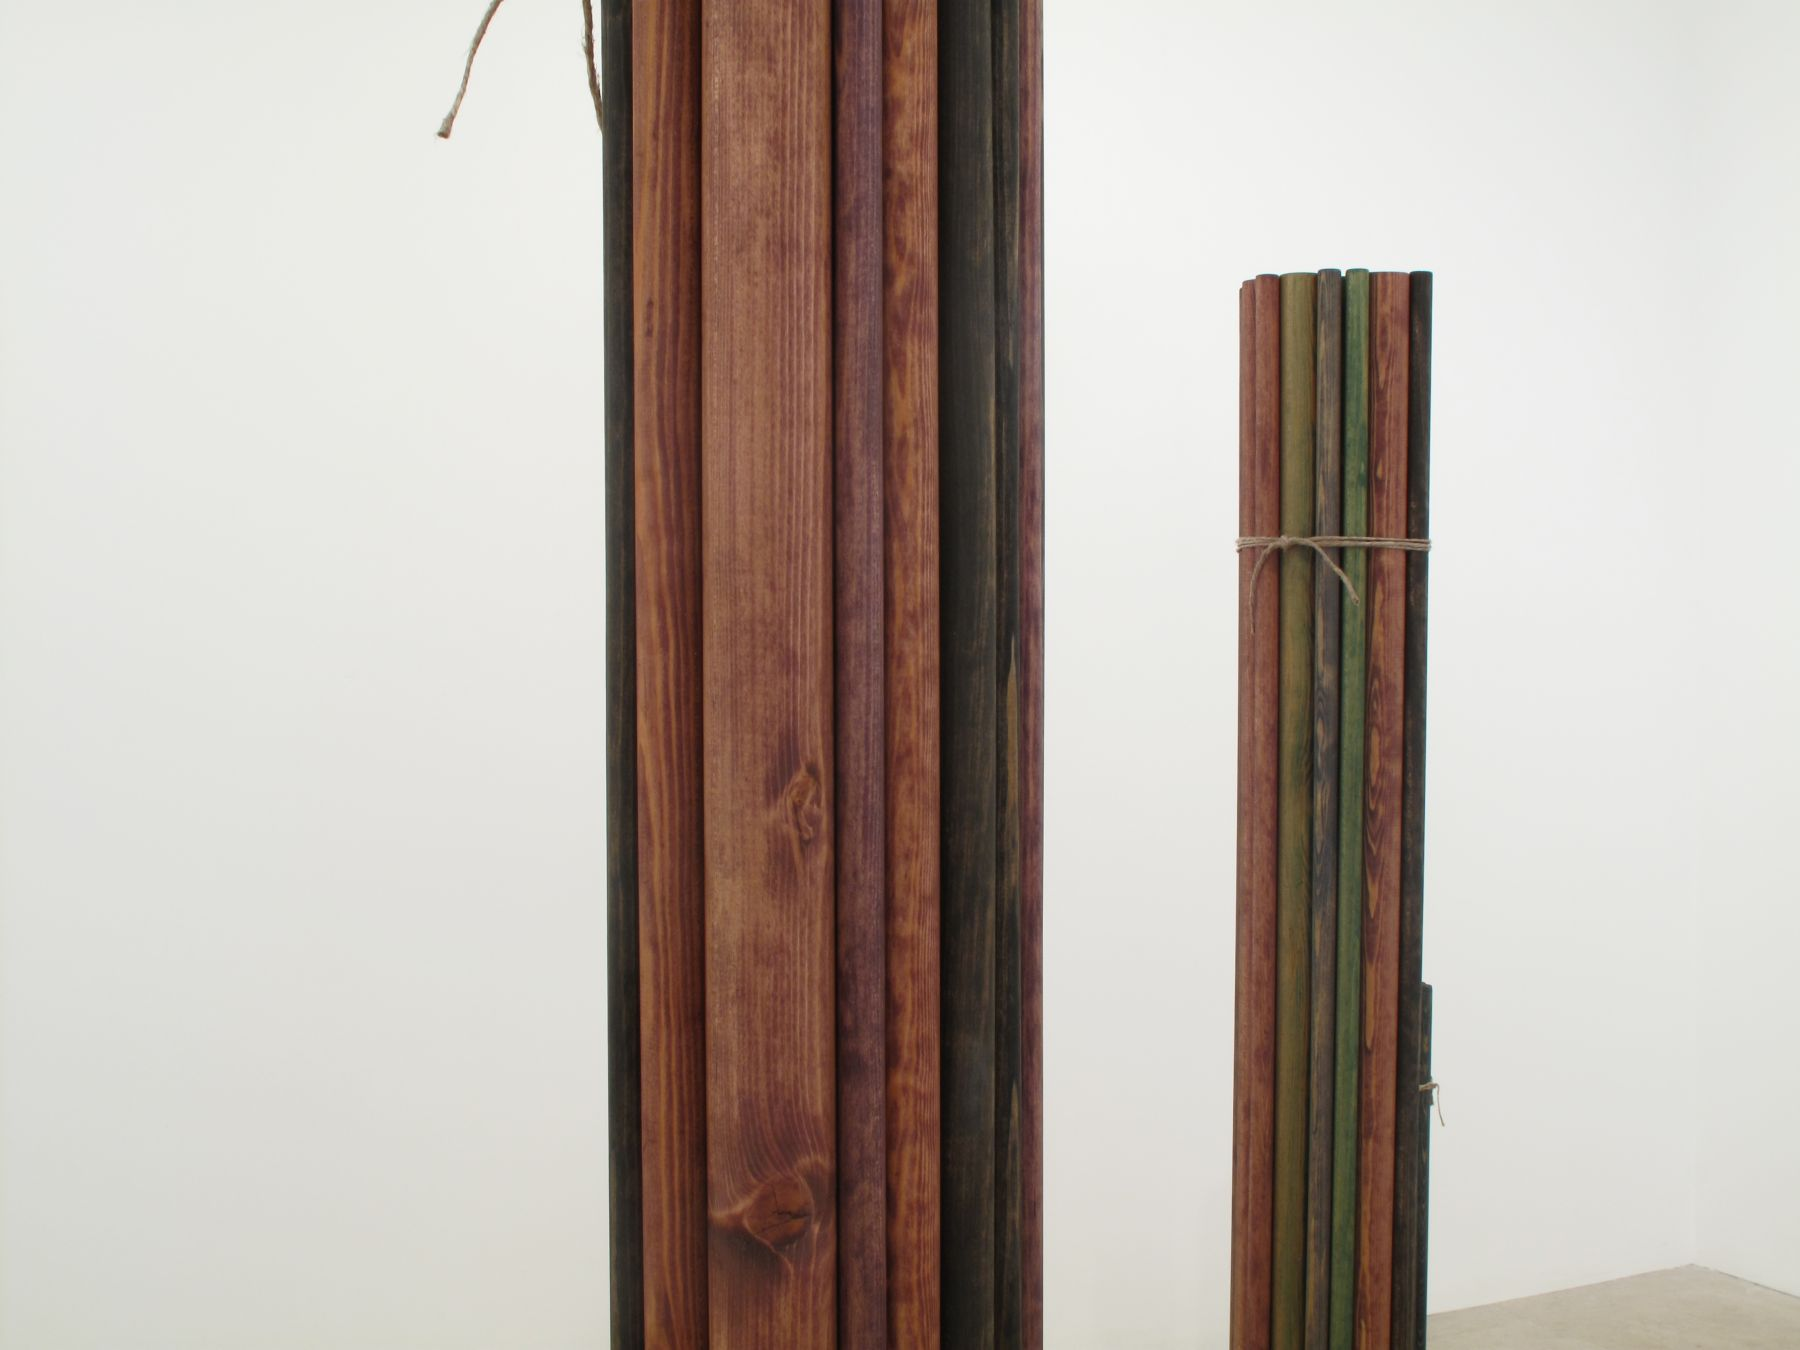 Bündel, 2009 (detail), wood, gouache, oil, twine, six parts, 74 7/8 x 107 x 37 inches (approx. overall)